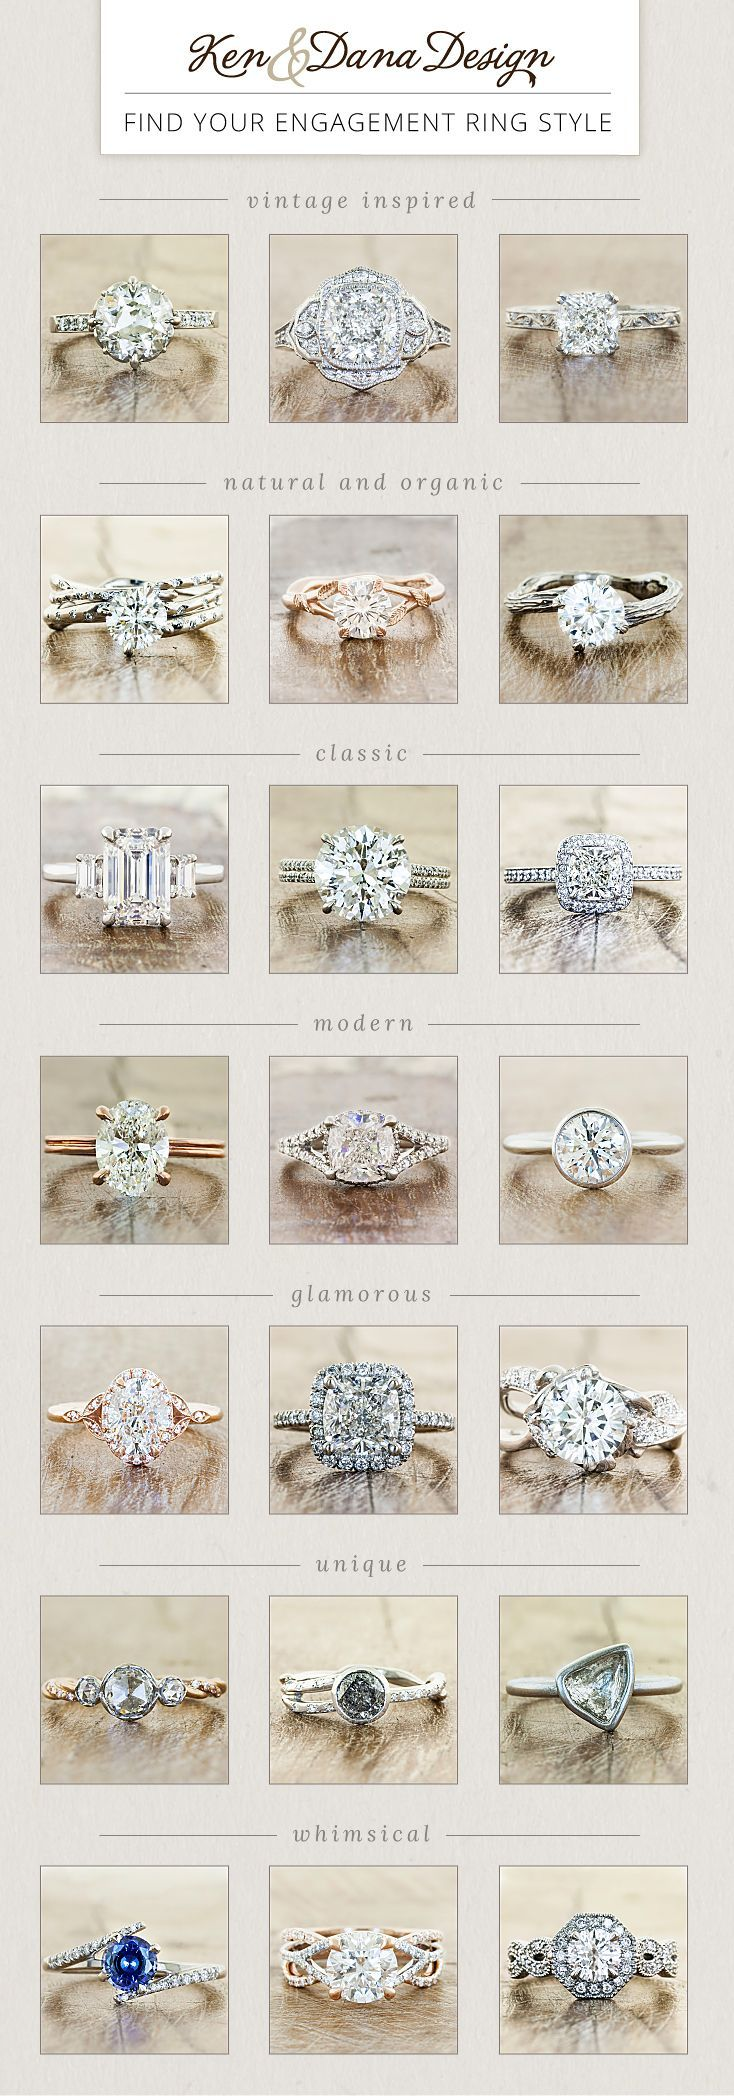 Find your engagement ring style - whether nature inspired, vintage, modern & more. by Ken & Dana Design.   Natural & organic/unique